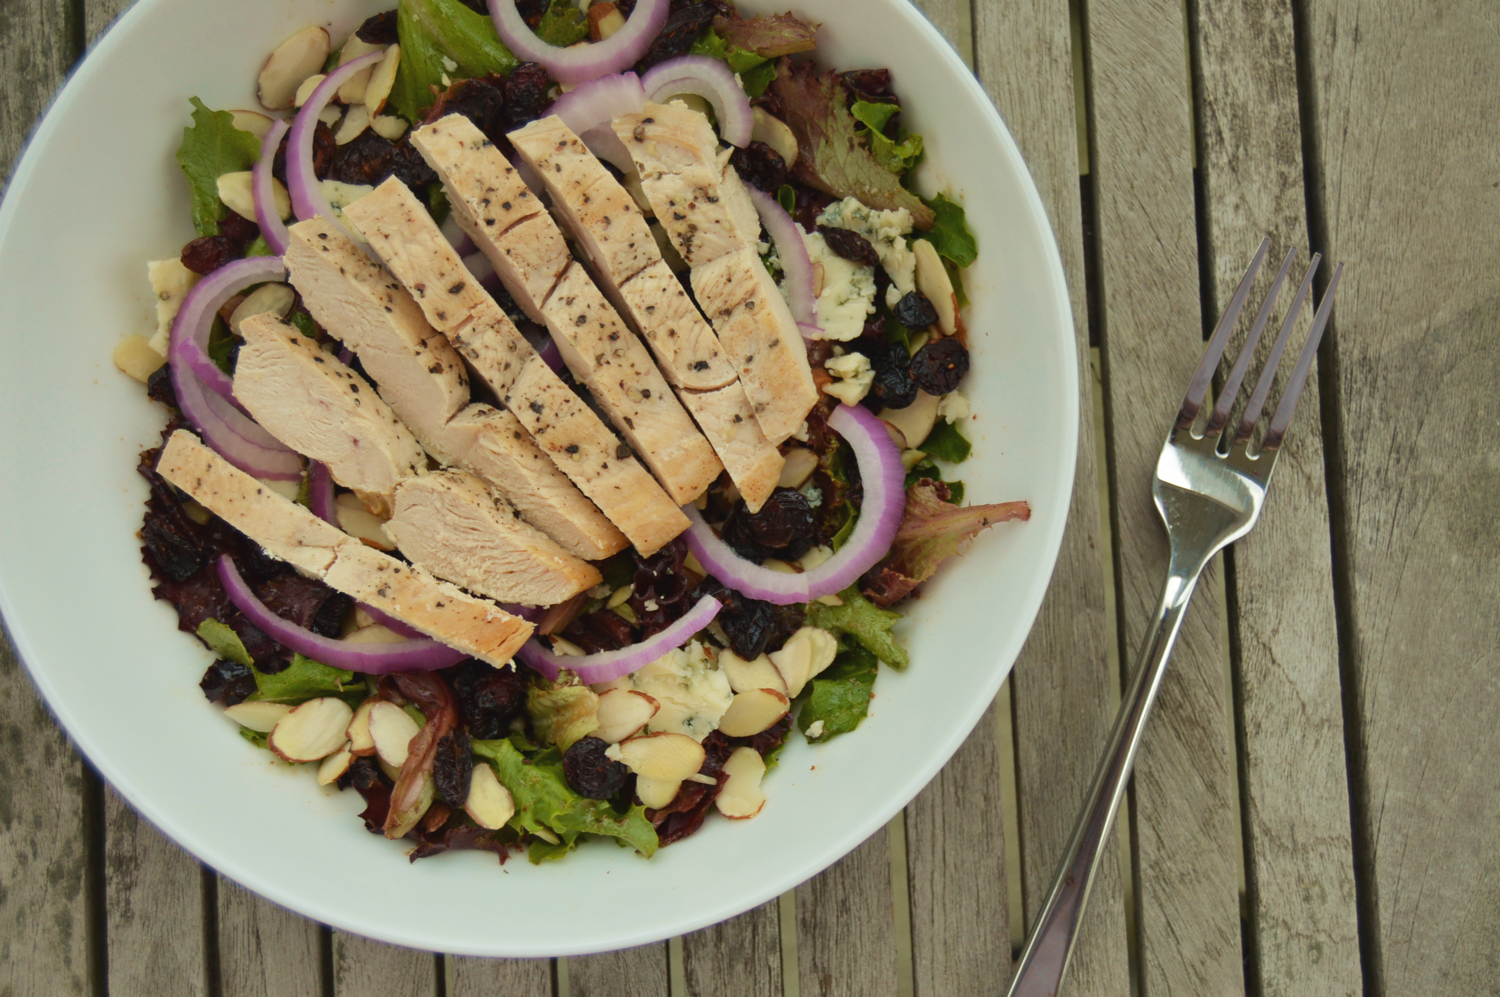 A Taste of the Good Life: Balsamic & Bleu Chicken Salad